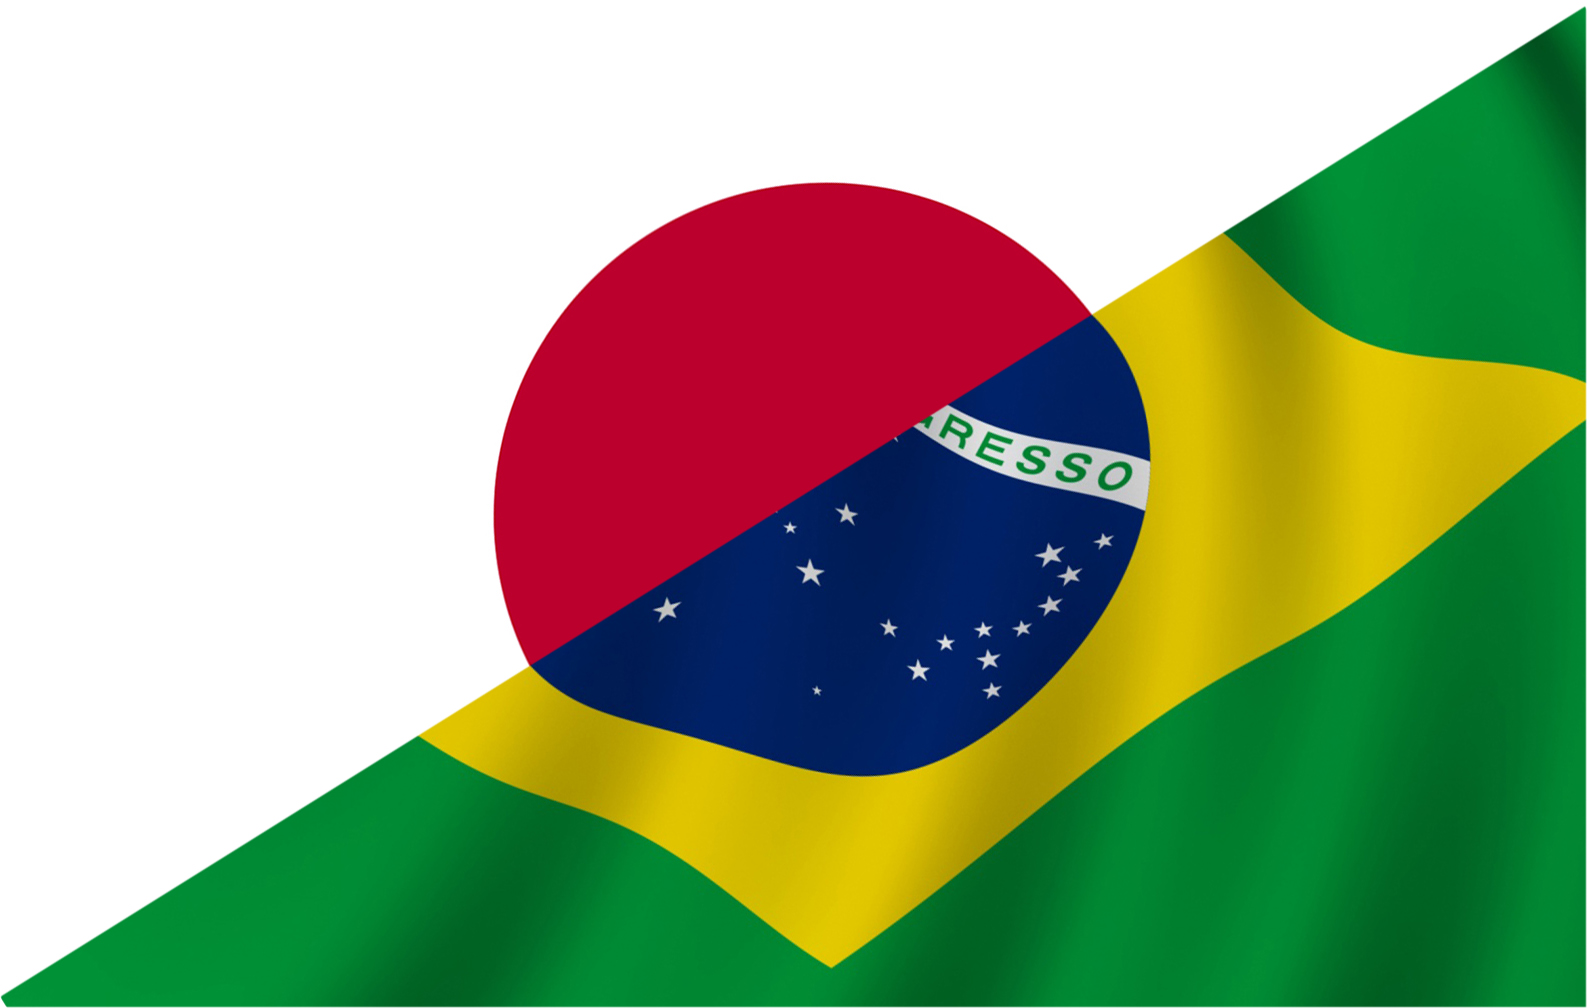 image of Brazilian and Japanese flags merged